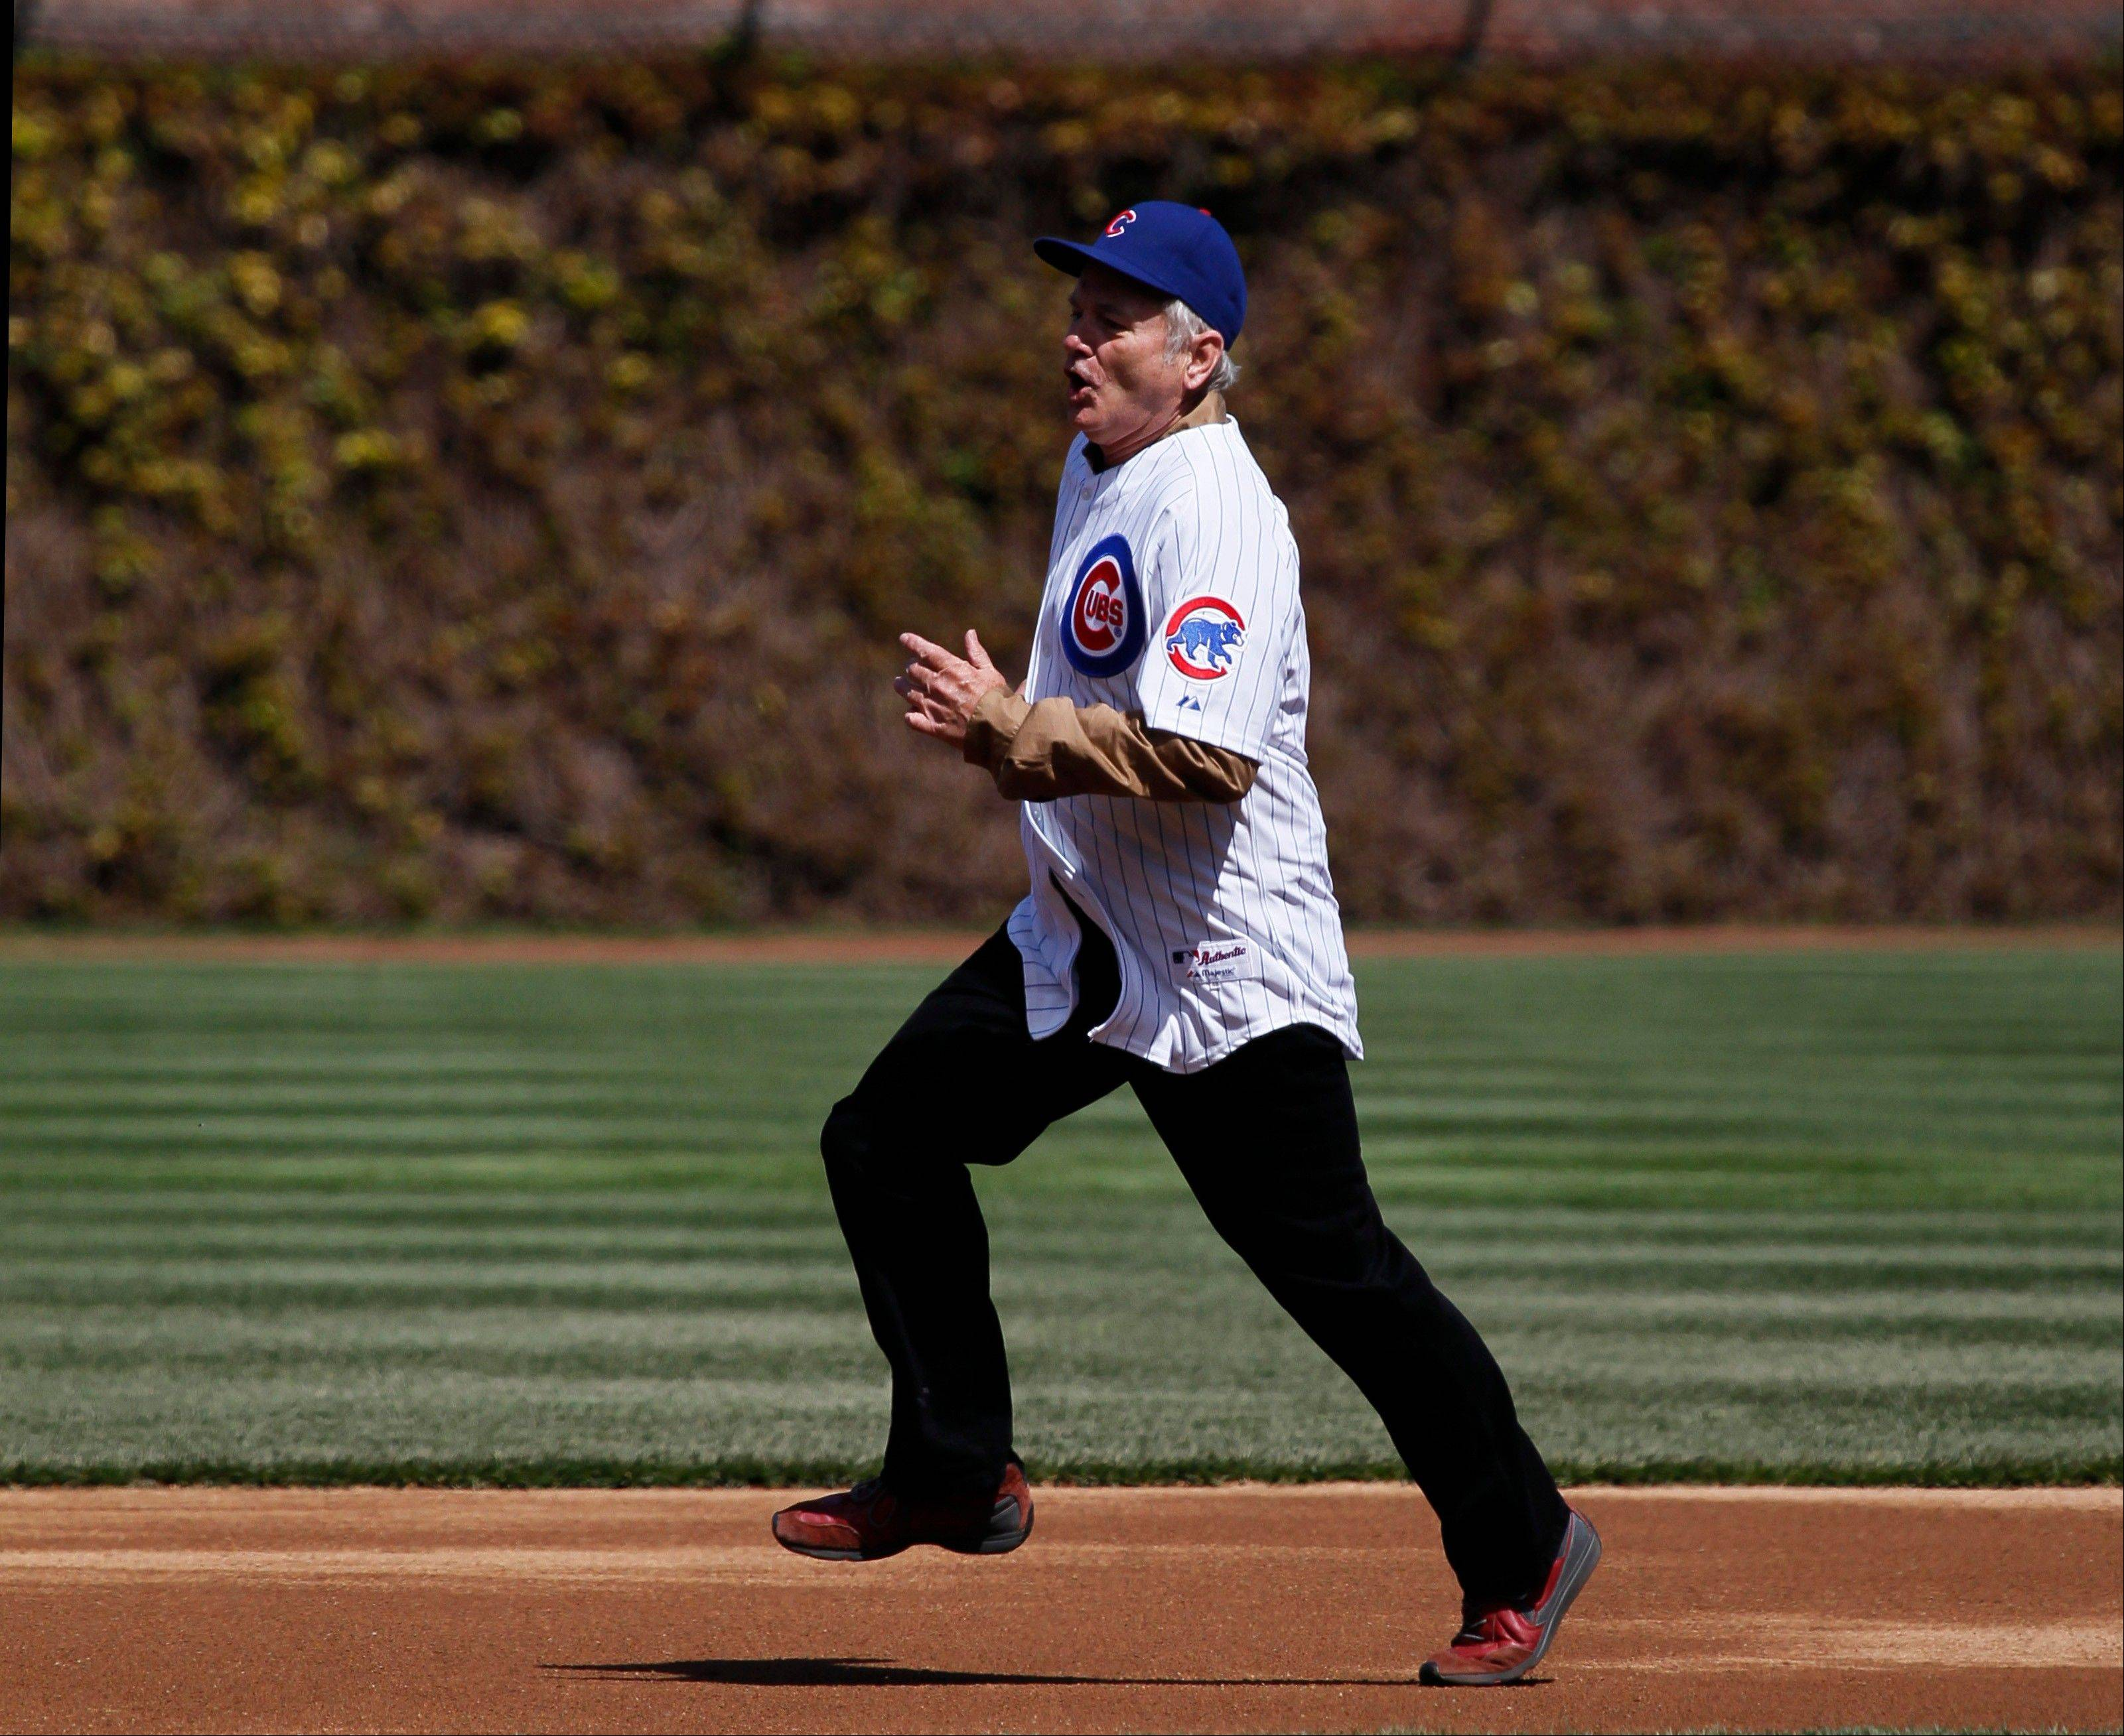 Actor Bill Murray rounds the bases before throwing out the ceremonial first pitch before a opening day baseball game between the Chicago Cubs and the Washington Nationals Thursday, April 5, 2012, in Chicago. The Nationals won 2-1.